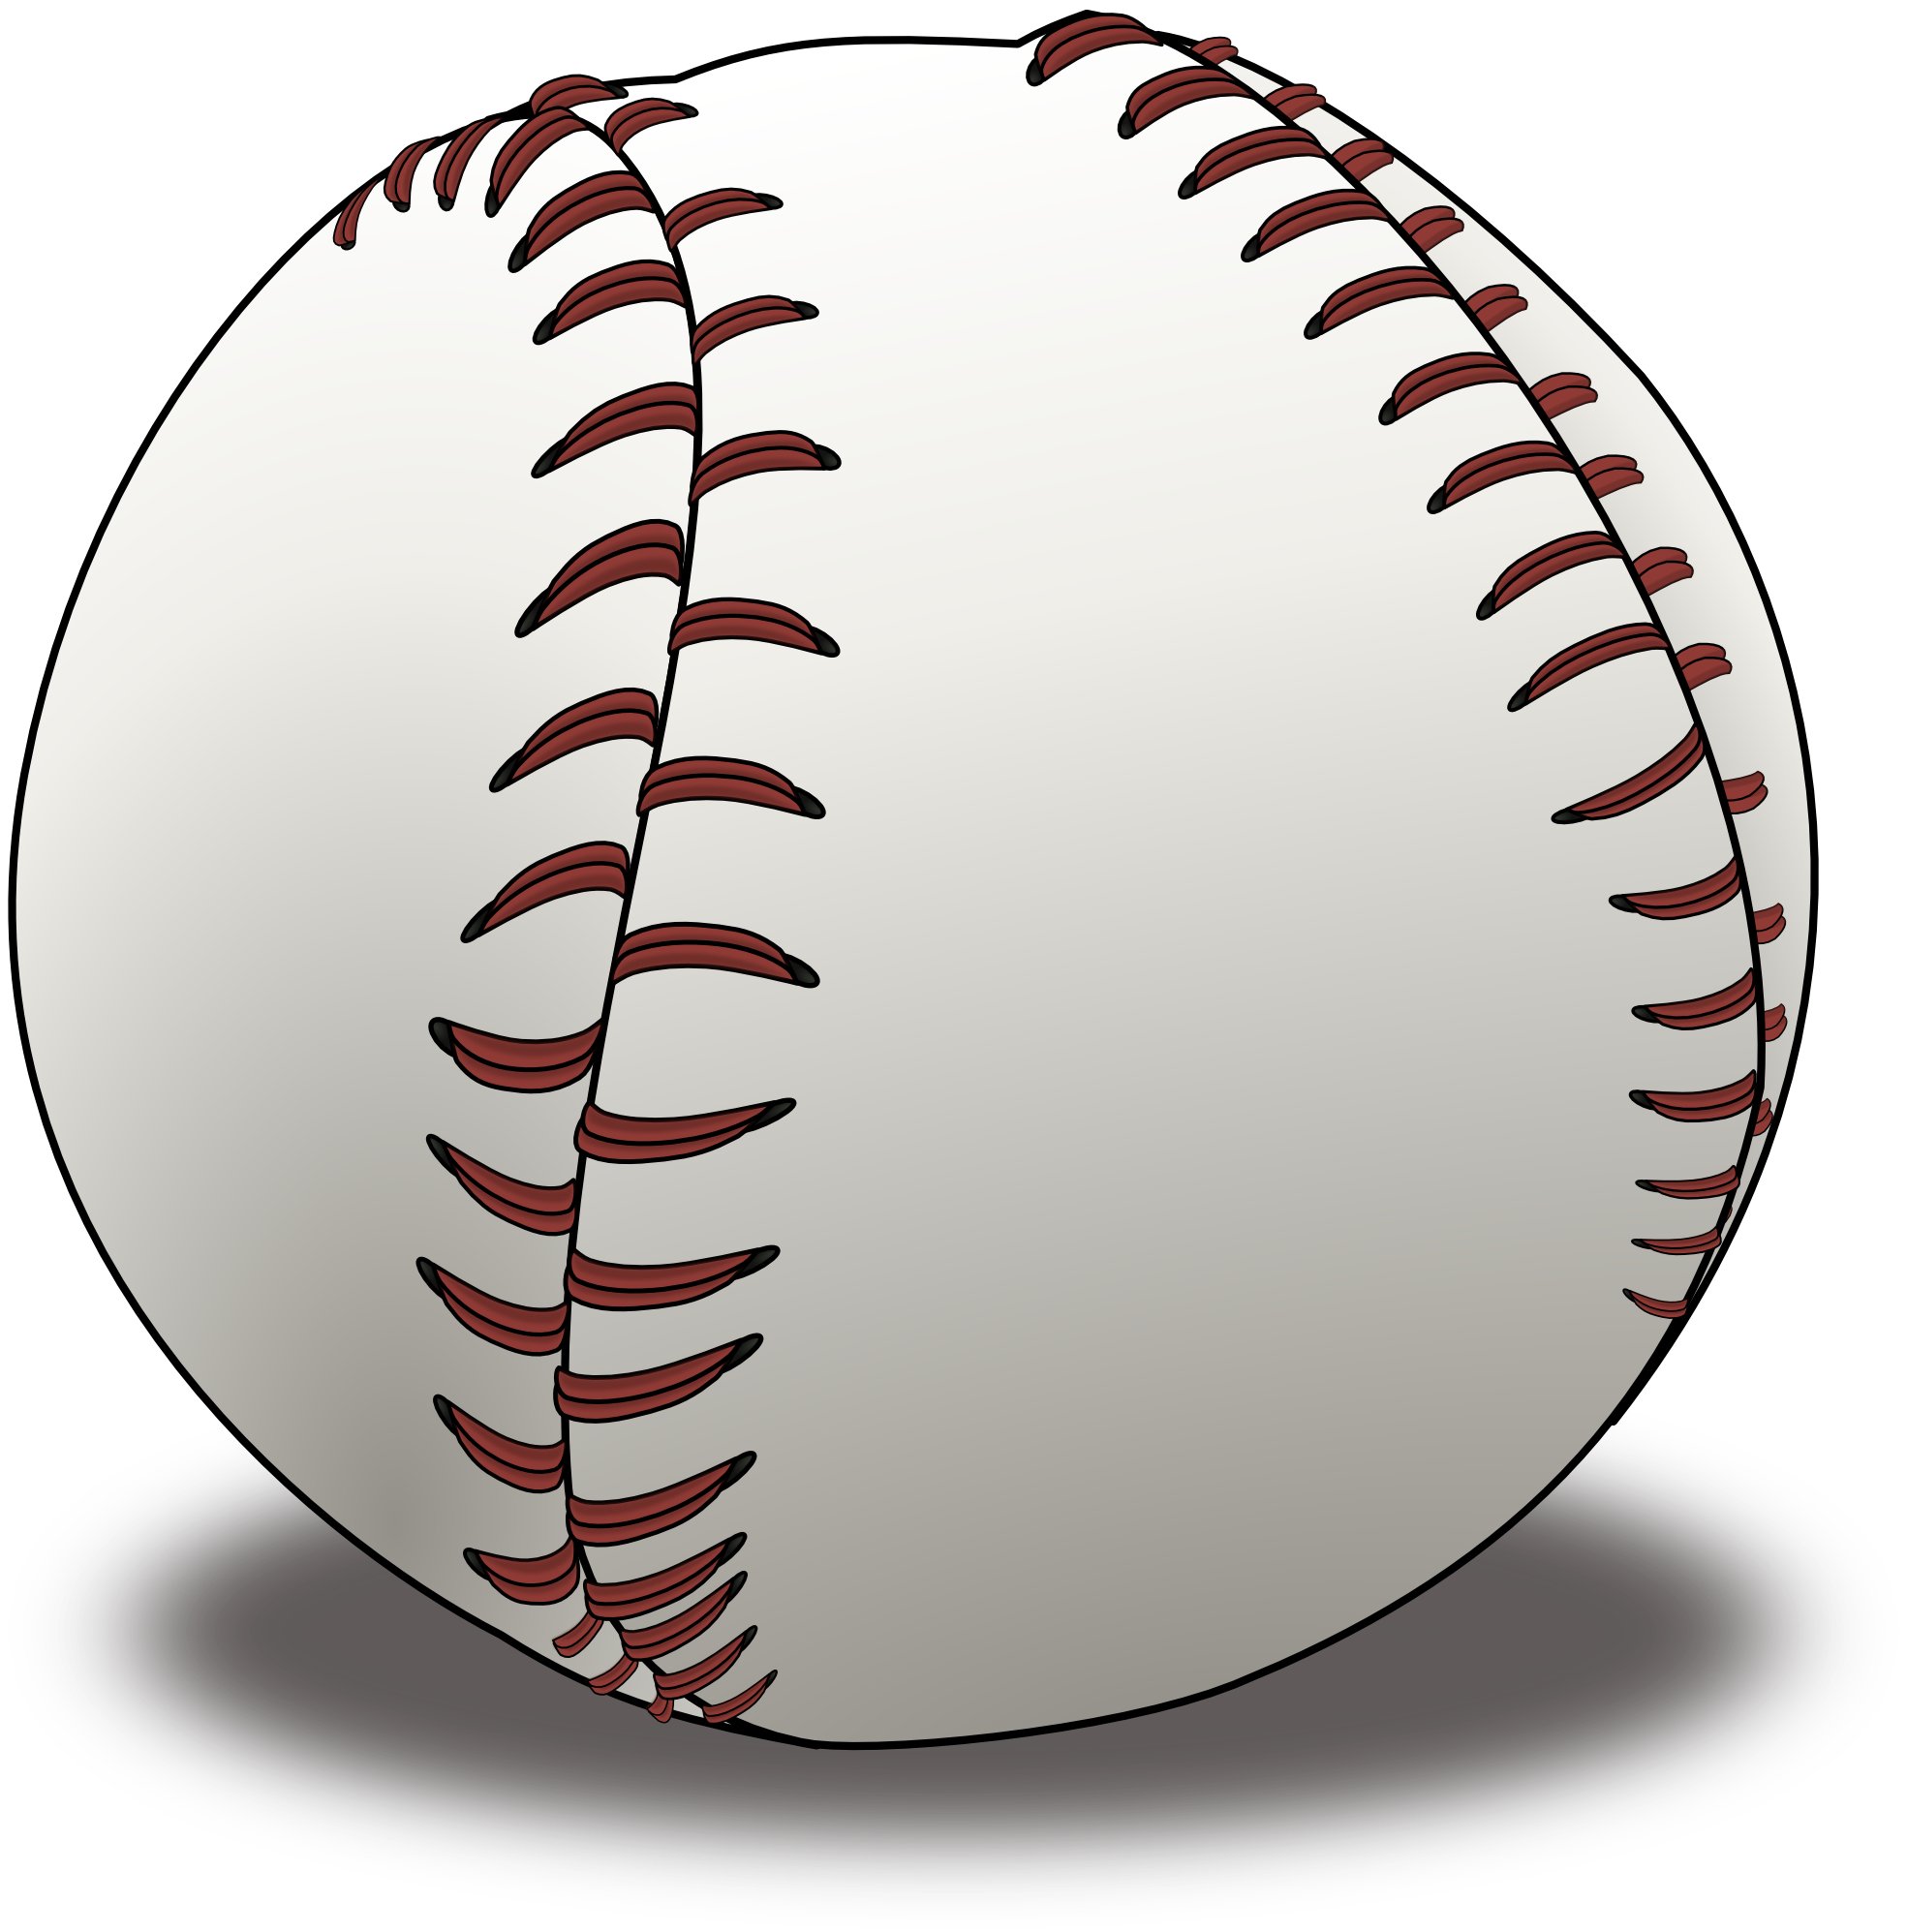 Baseball vector png. Clipart free icons and